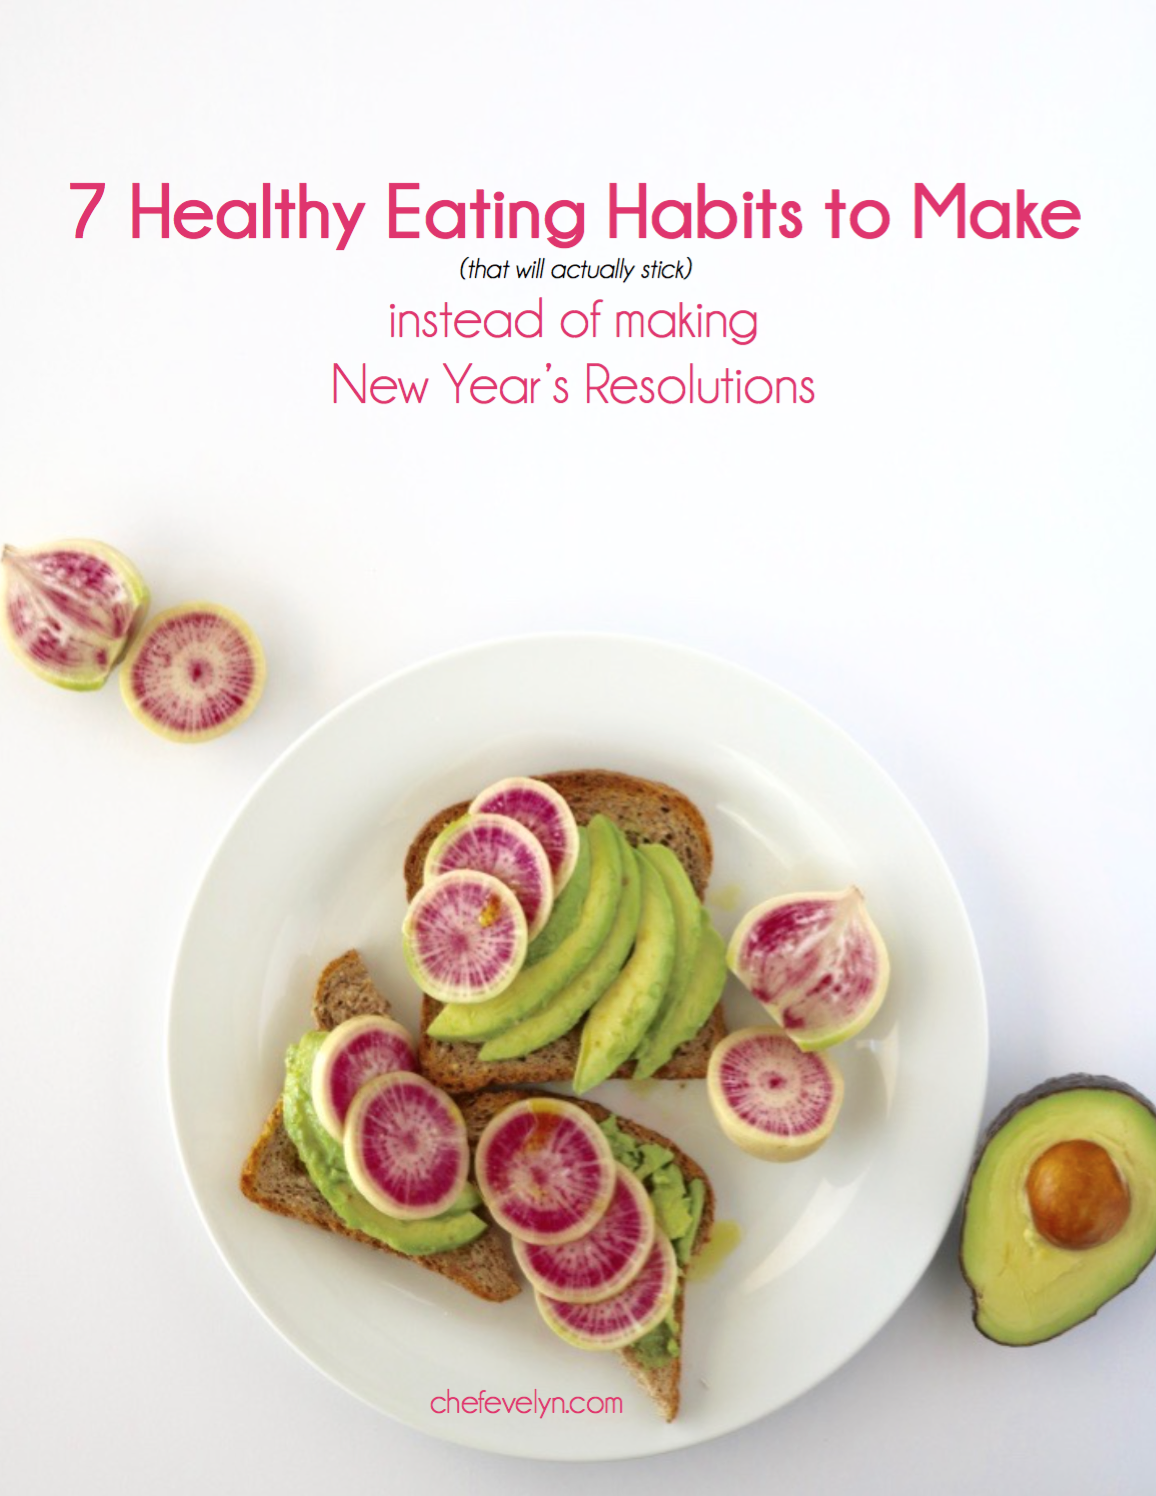 7 Healthy Eating Habits To Make Instead Of New Year's Resolutions 7 Healthy  Eating Habits To